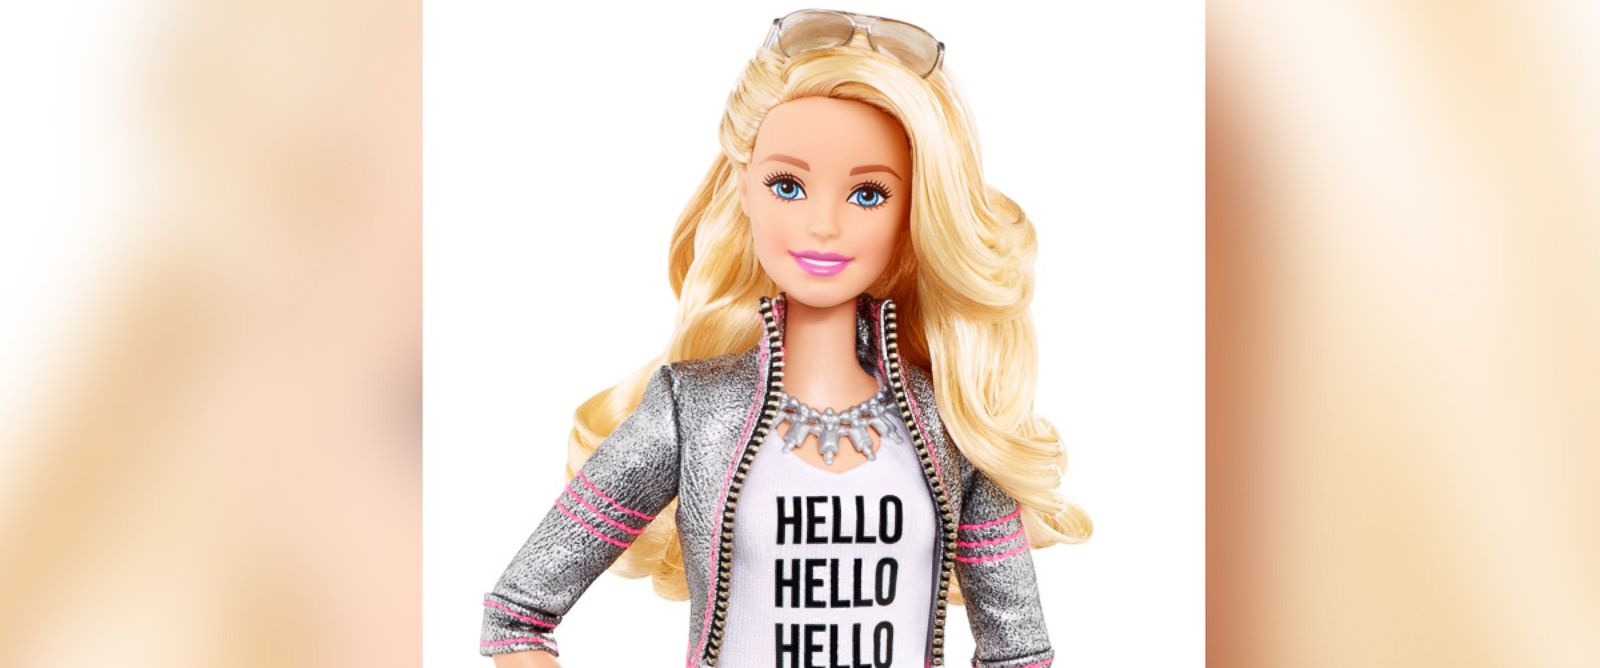 PHOTO: Mattel unveiled a new Internet-connected Barbie.